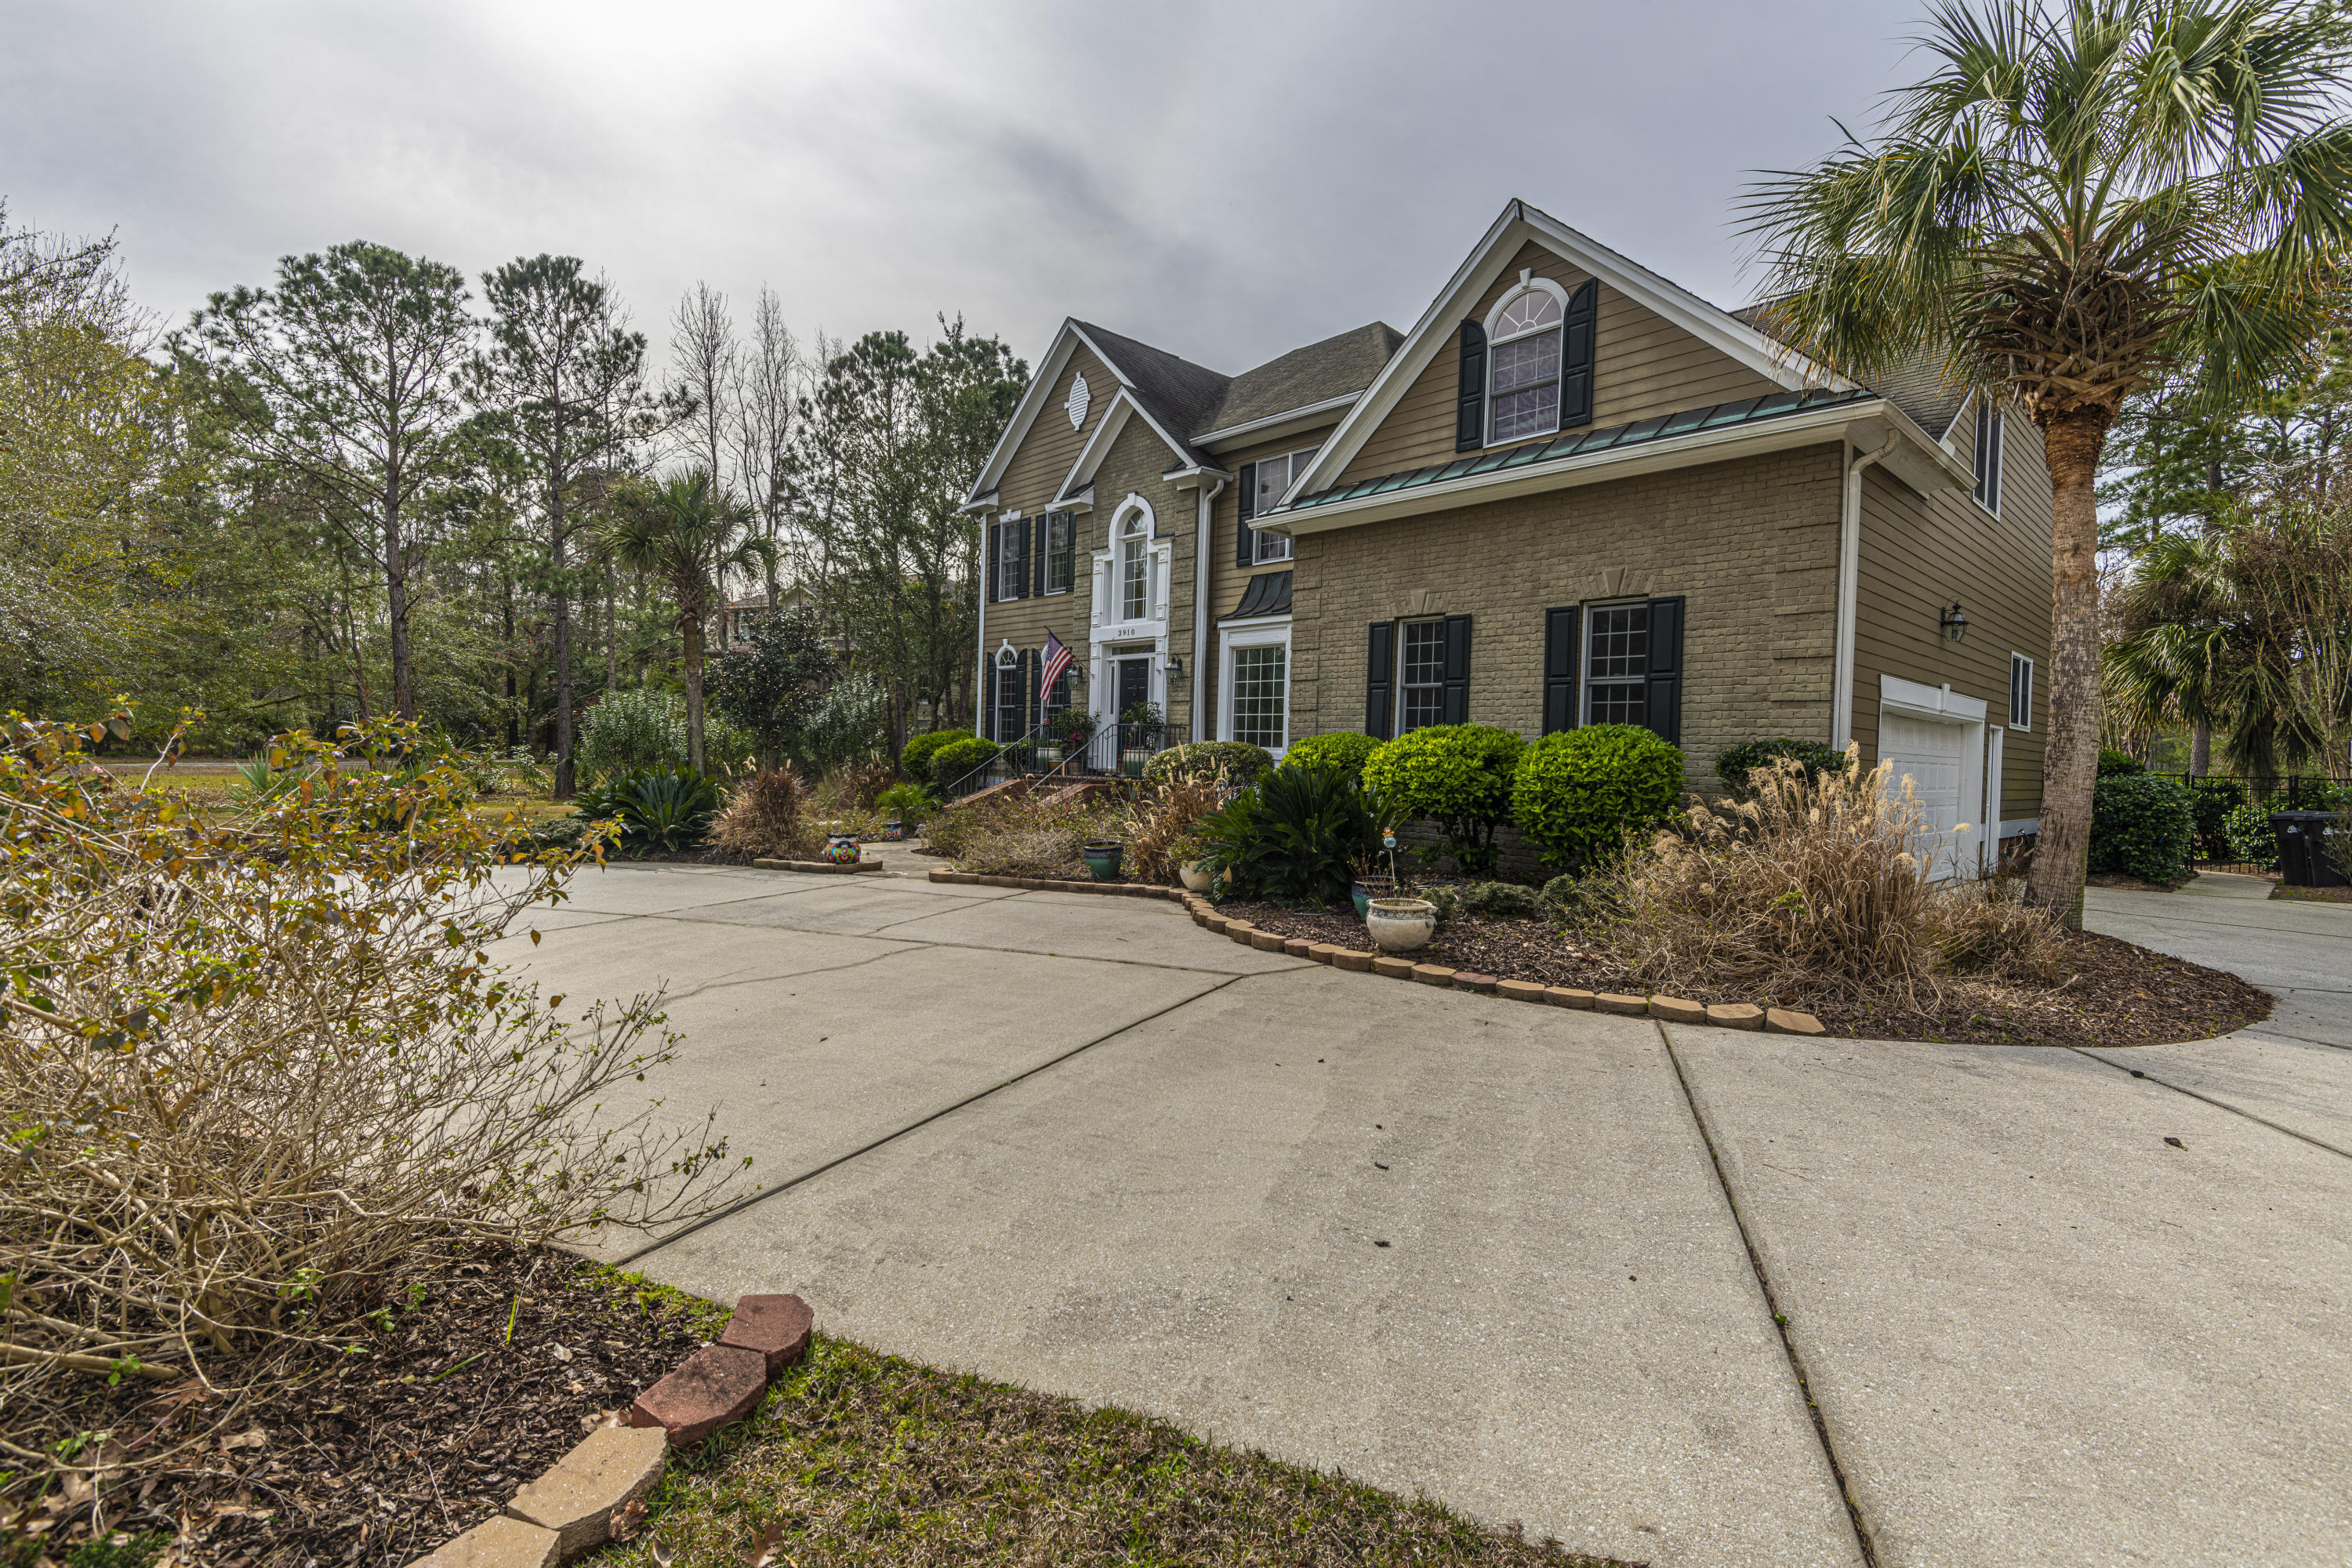 Dunes West Homes For Sale - 3910 Colonel Vanderhorst, Mount Pleasant, SC - 36